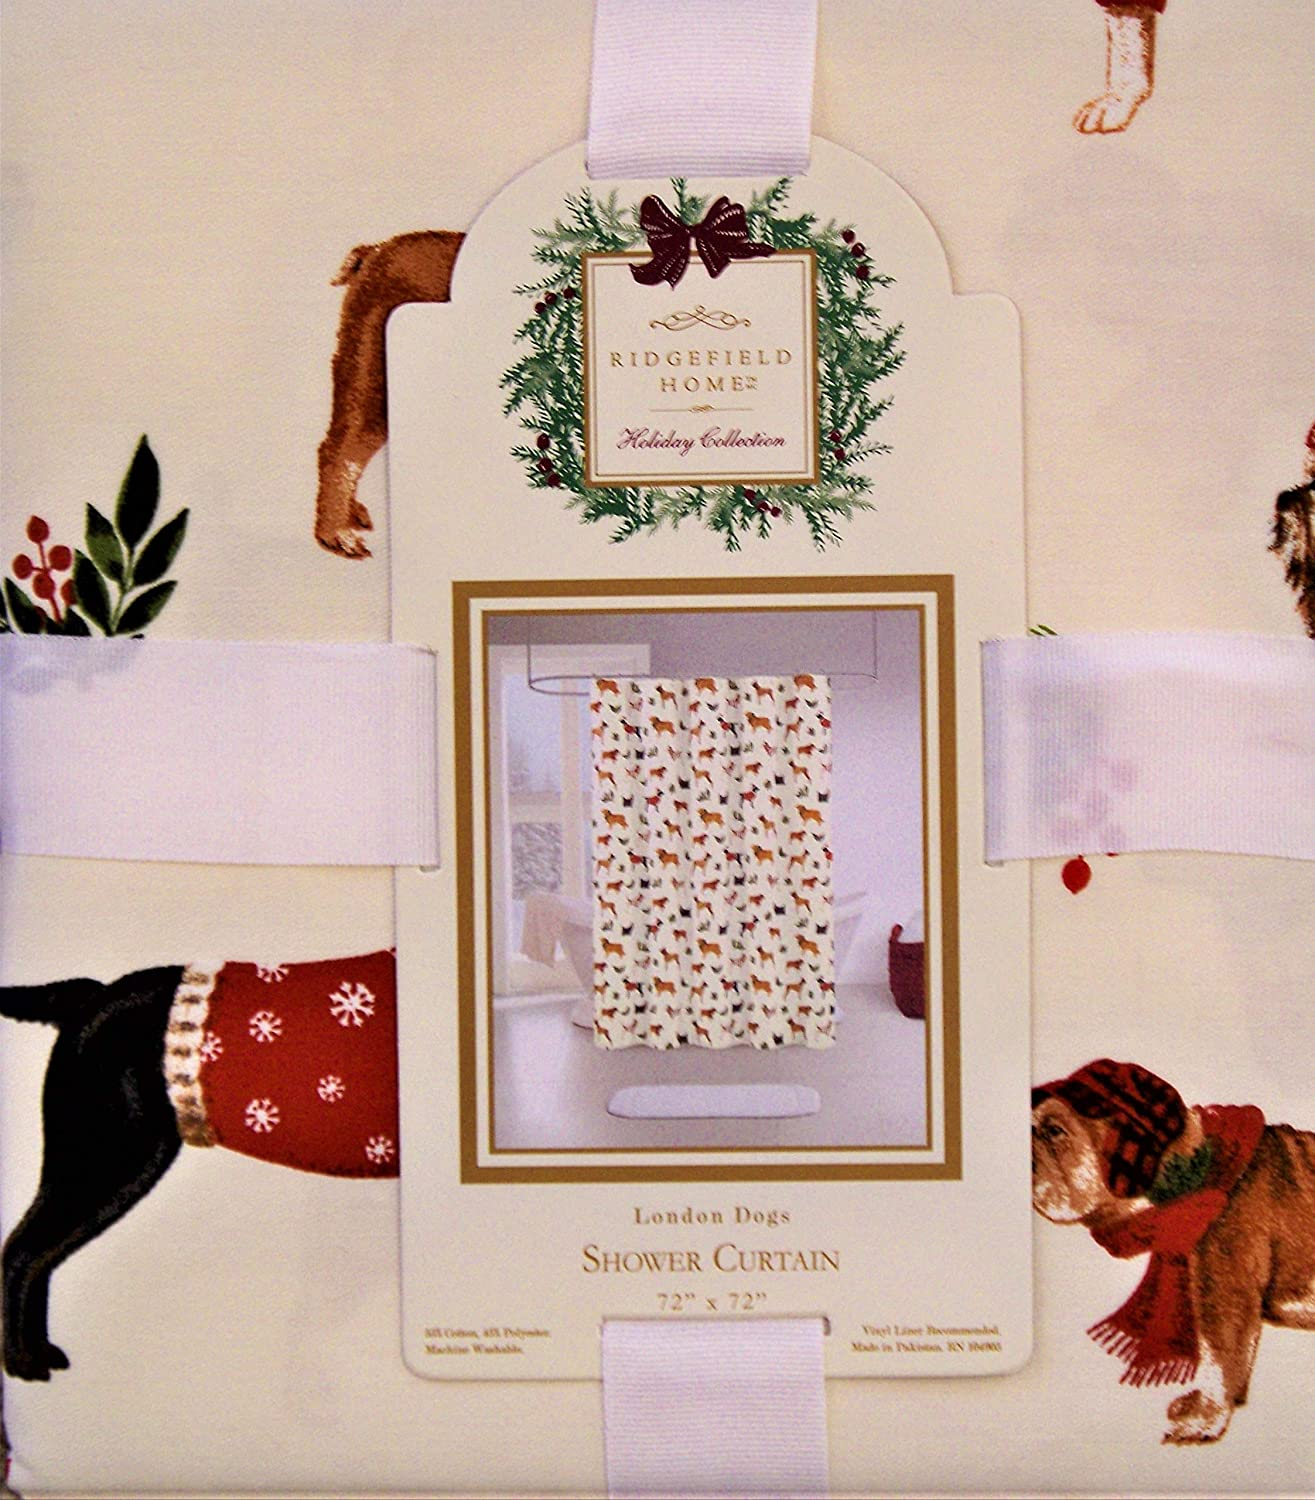 Ridgefield Home Holiday Shower Curtain Dogs Dressed in Holiday Winter Themed Costumes Against Ivory Beige Background